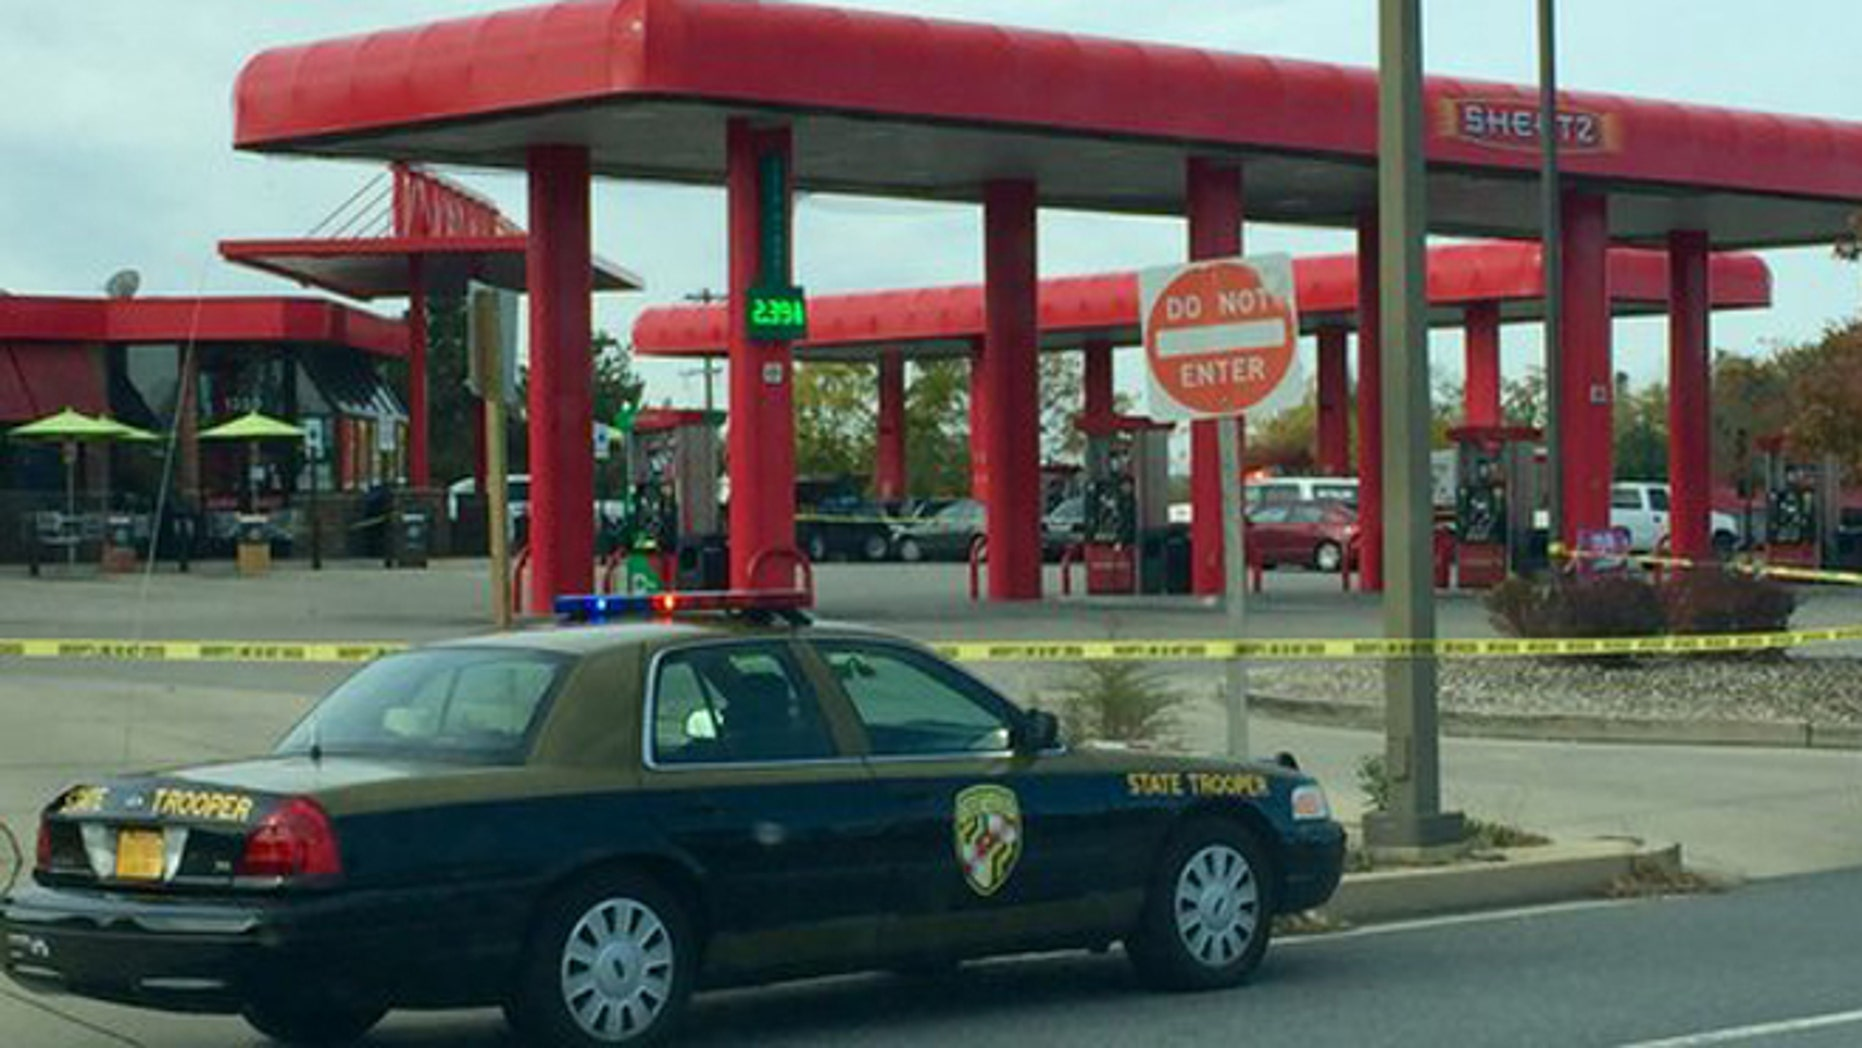 A man was reportedly shot outside a Maryland gas station by a state trooper on Monday.